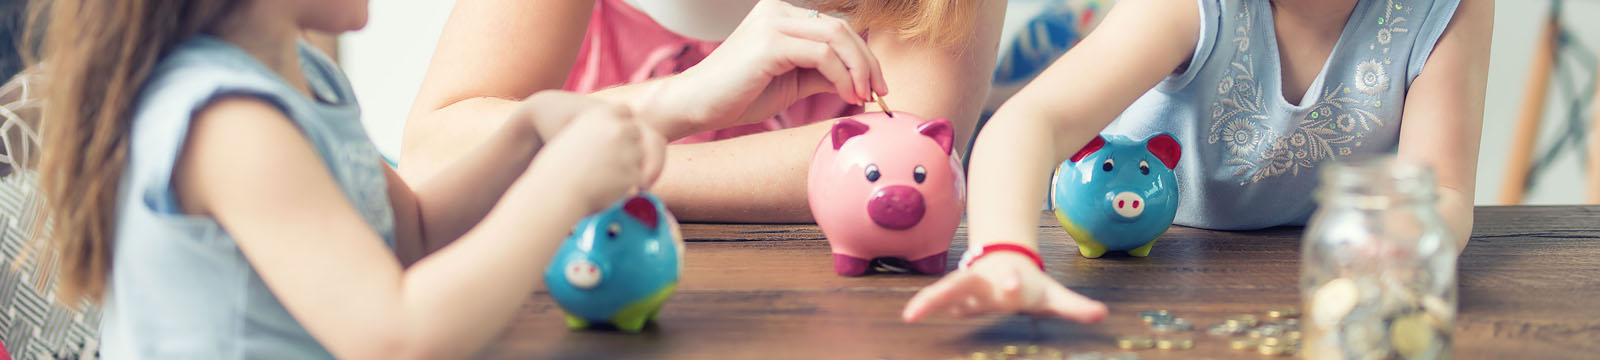 woman and two children's hands putting coins into piggy bank